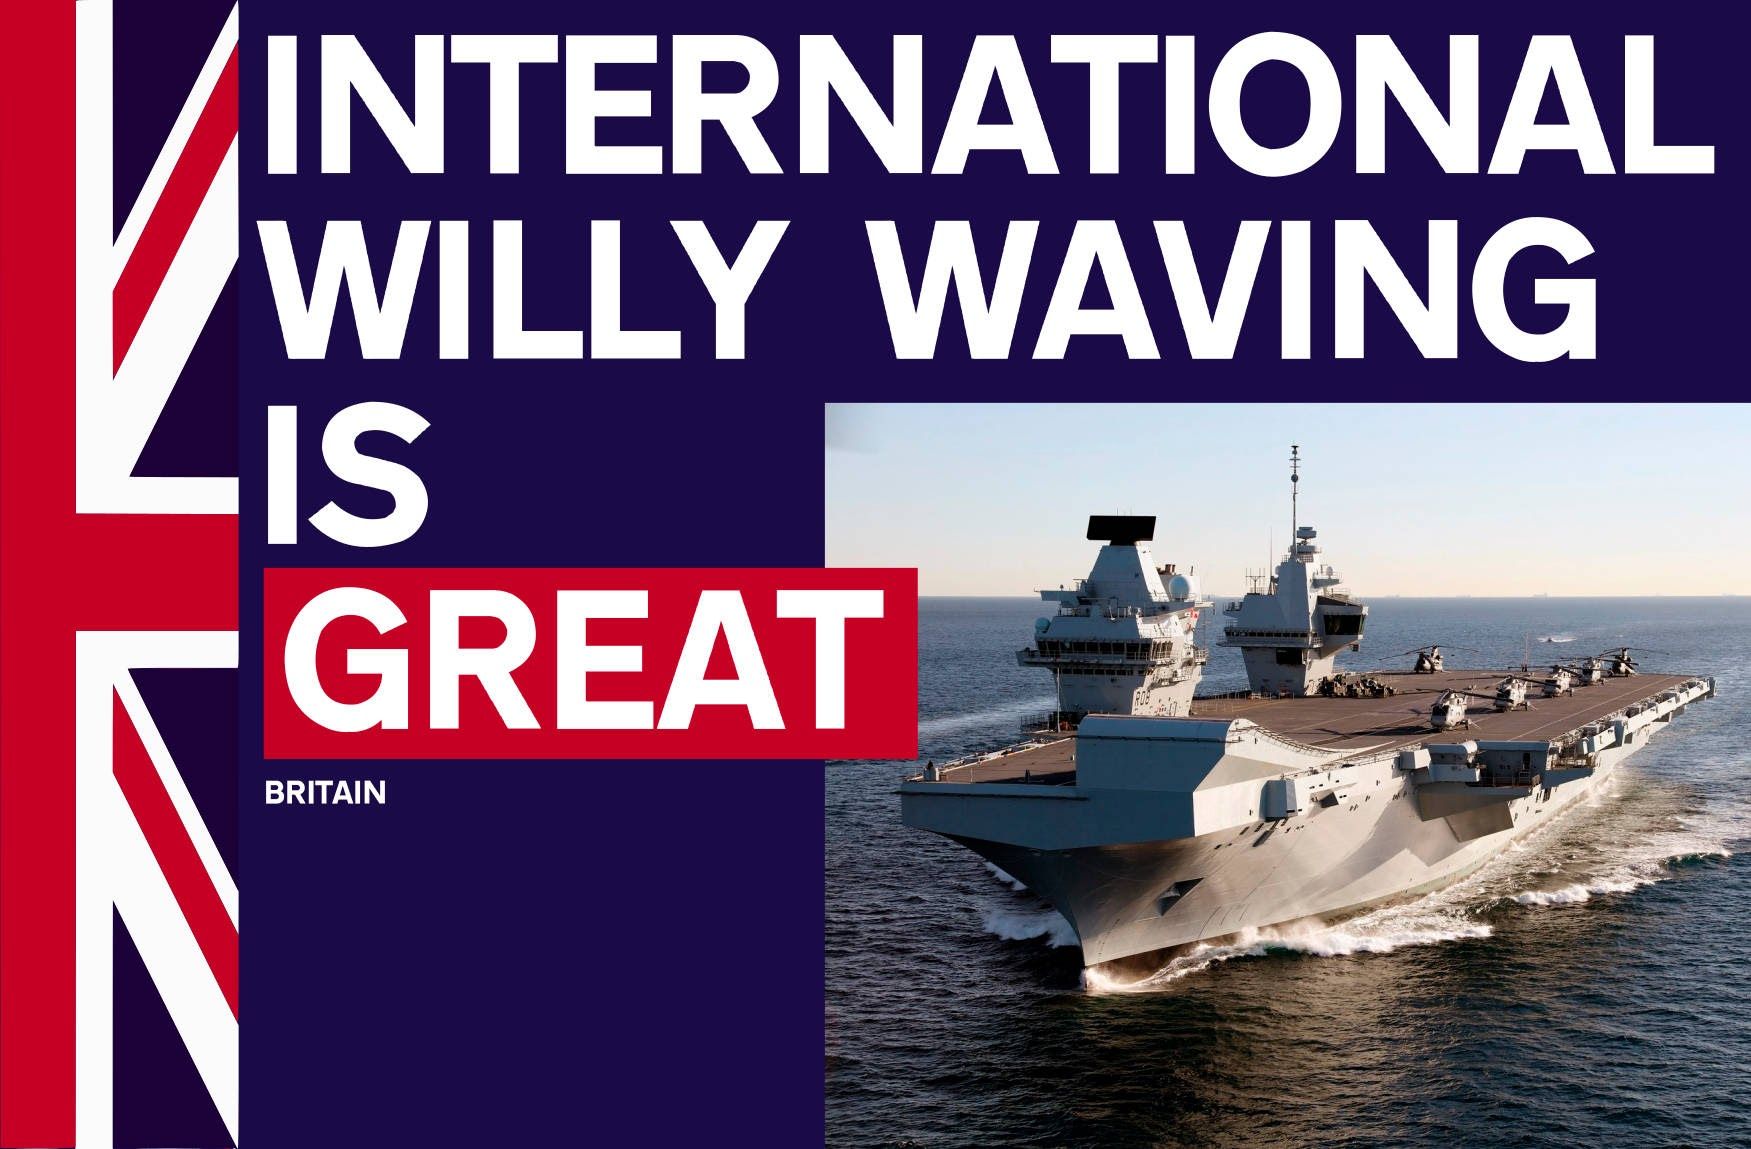 International Willy Waving is Great #WelcomeToGREAT #DissolveTheUnion #EndLondonRule